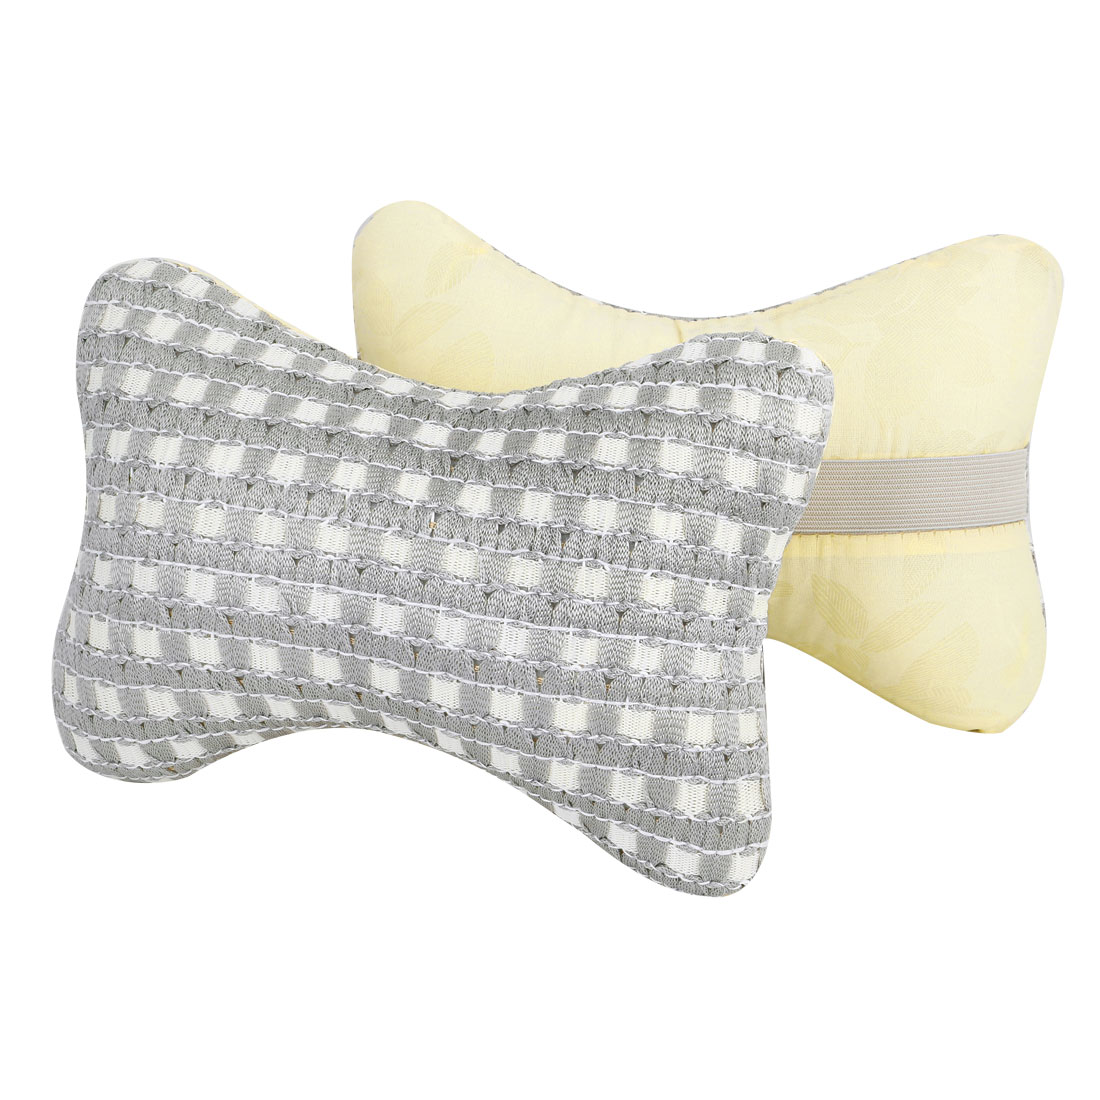 Car Auto Bone Shaped Zipper Closure Neck Head Rest Cushion Pillows Gray White Pair